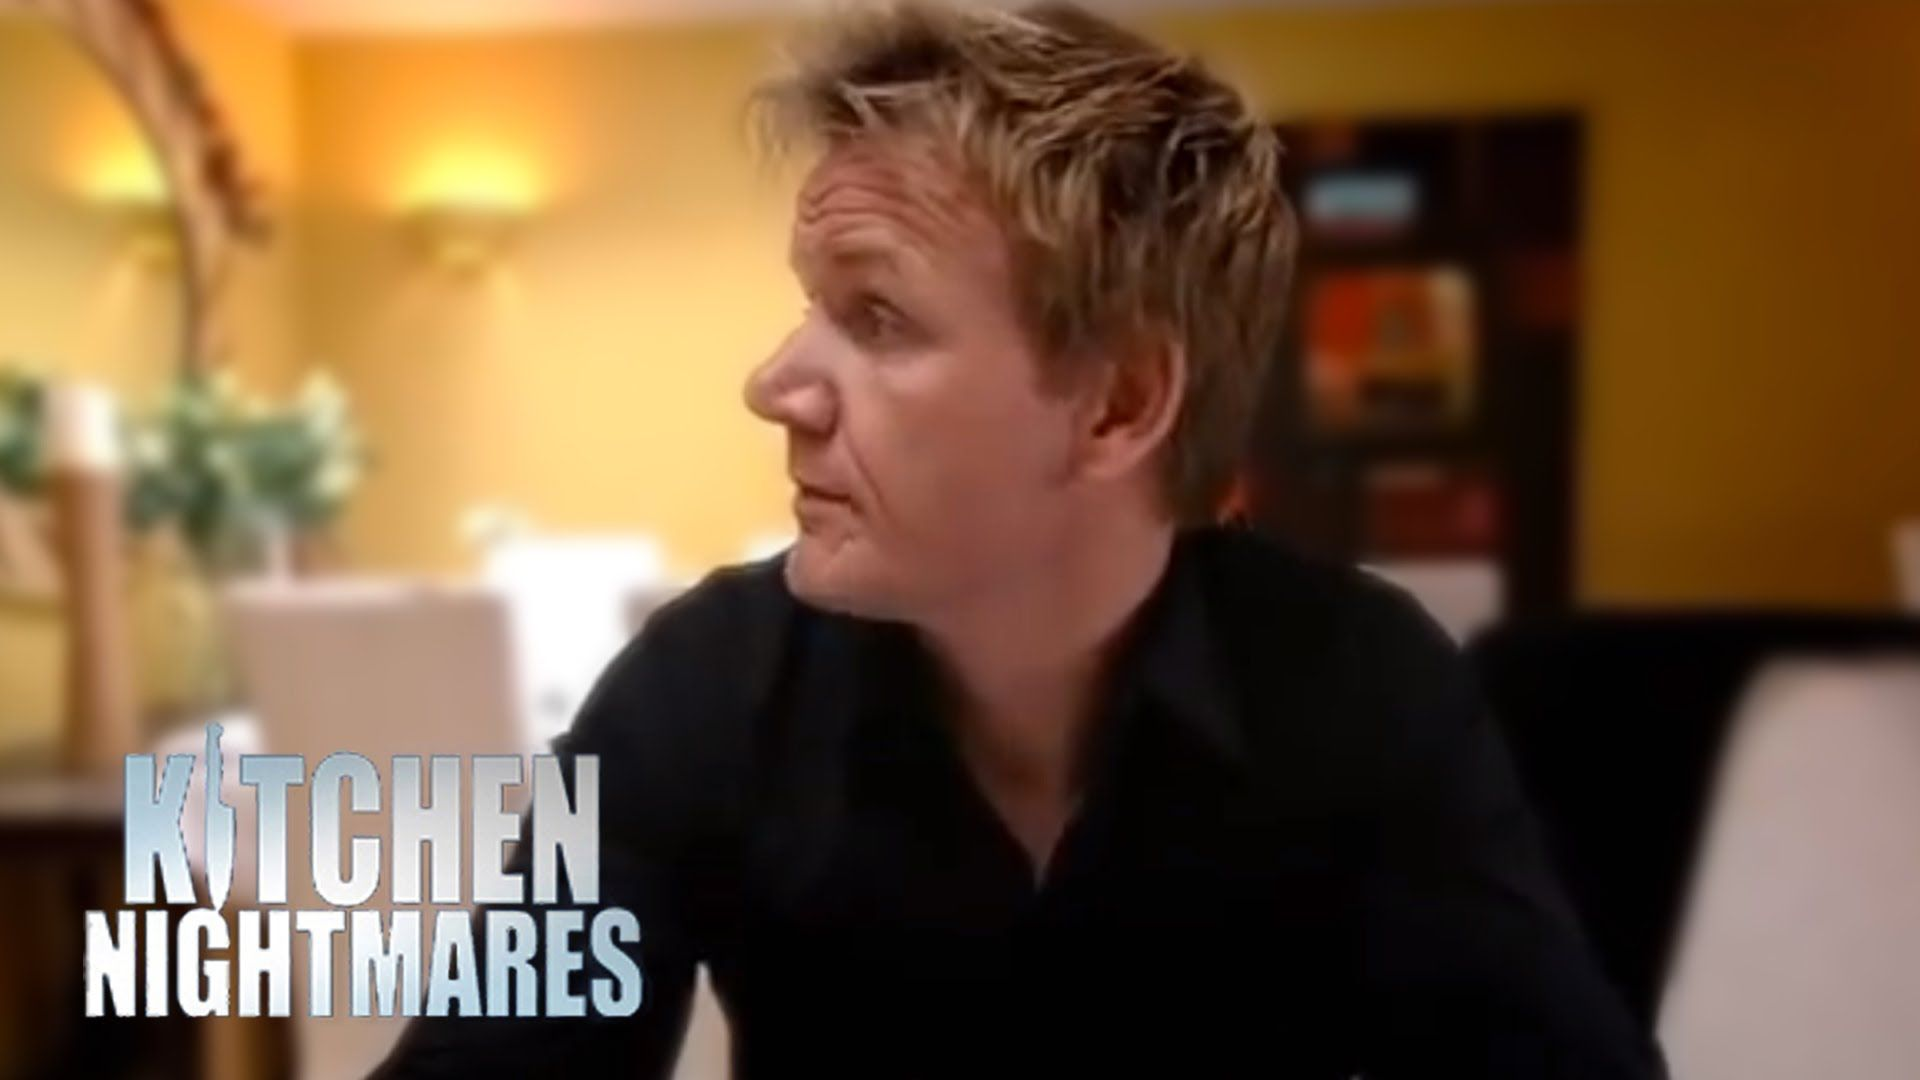 owner threatens gordon for calling him stupid - kitchen nightmares